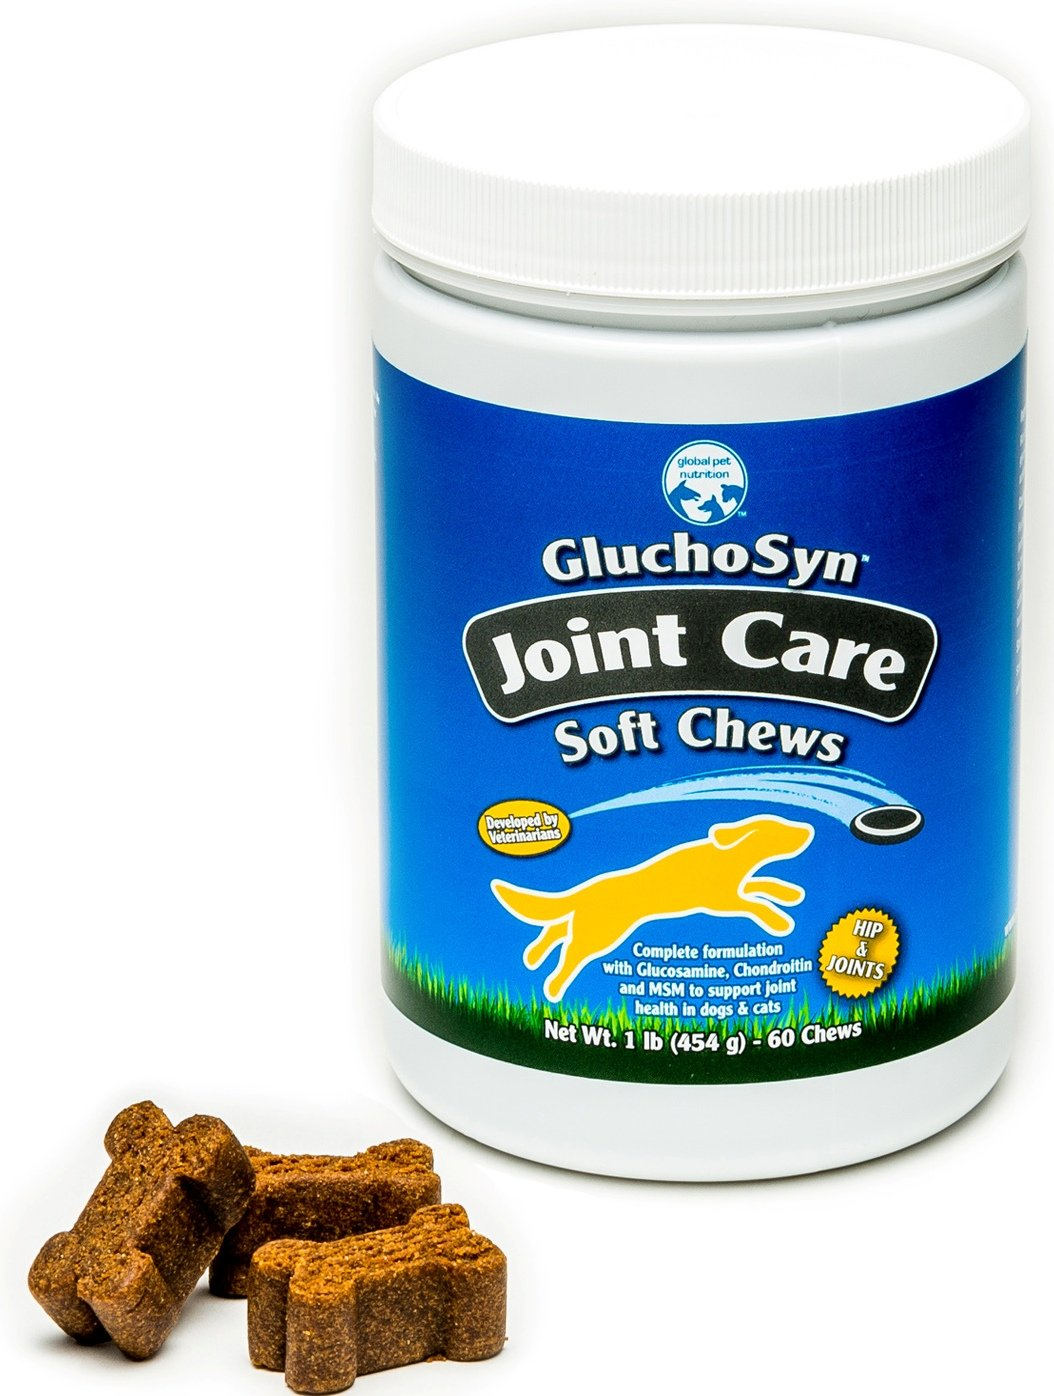 Joint Care Soft Chews For Dogs  Hip & Joint  Great For Improving Mobility  Complete Formulation With High Amounts Of Glucosamine, Chondredin, Msm & Hyaluronic Acid  1 Pound, 60 Soft Chews  Great Value